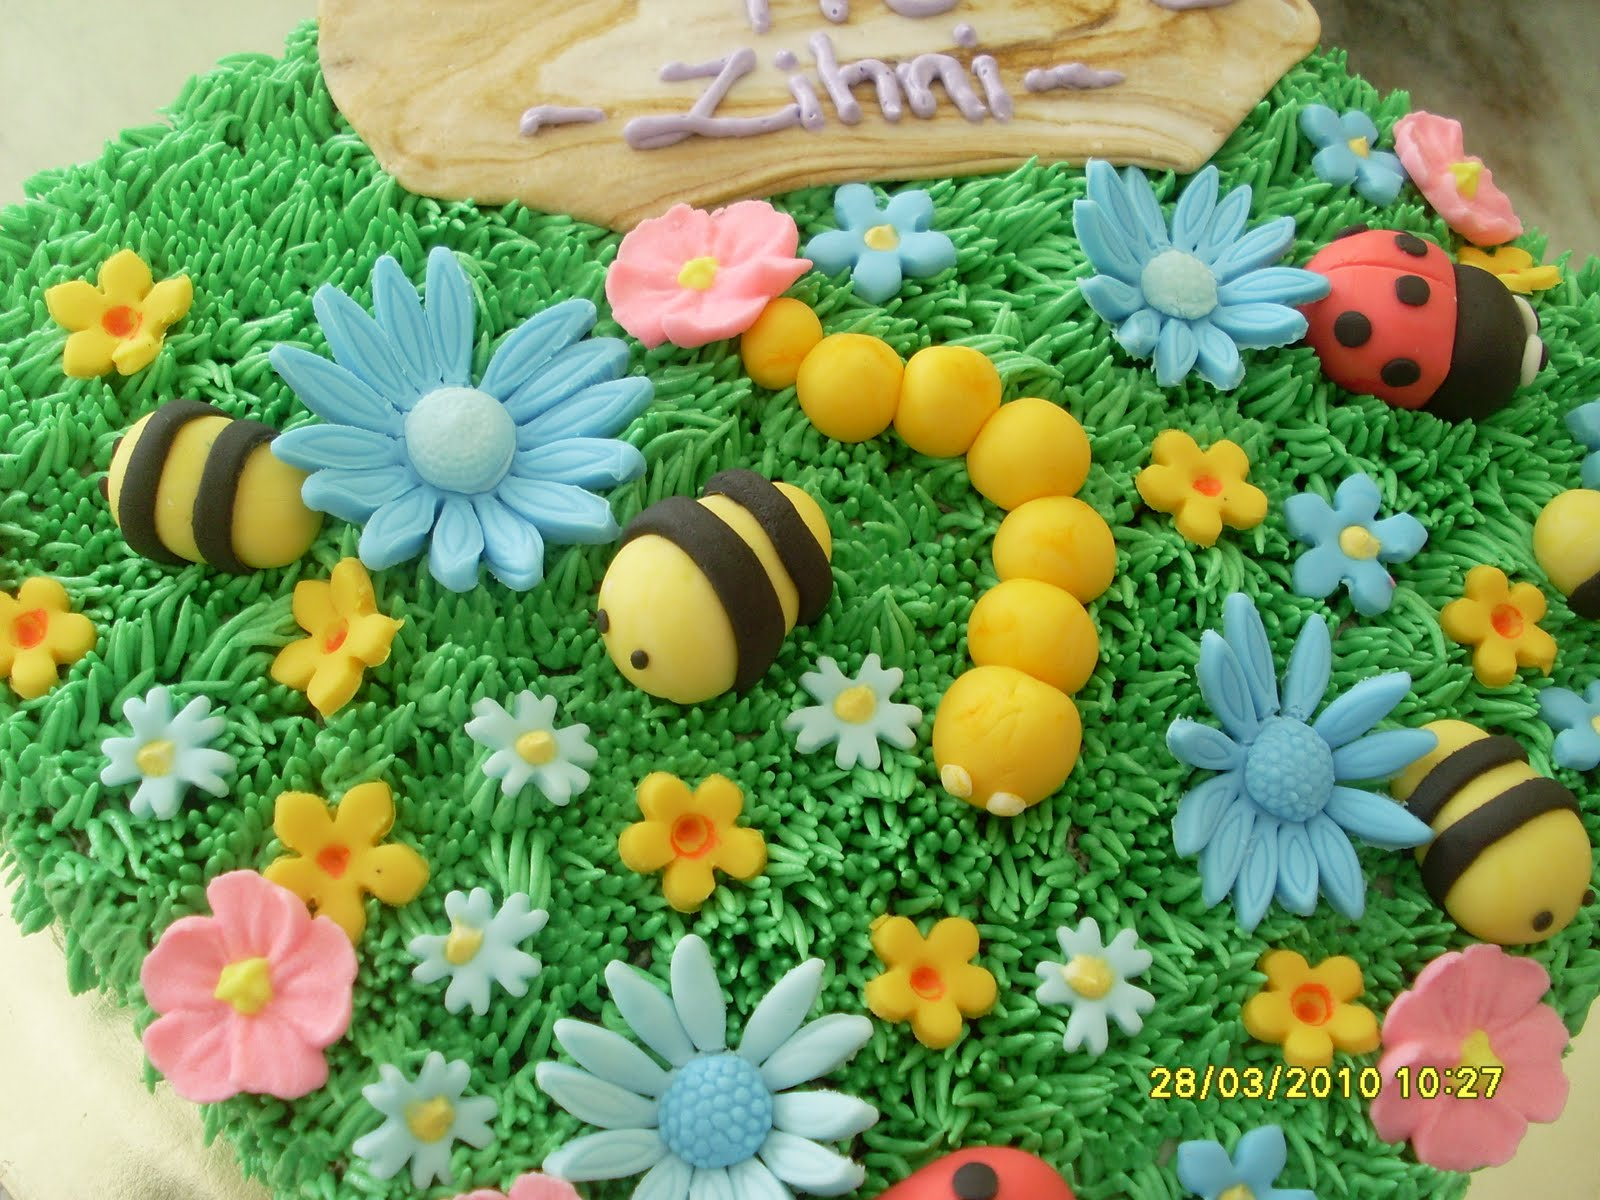 images of cakes with garden theme - photo #36